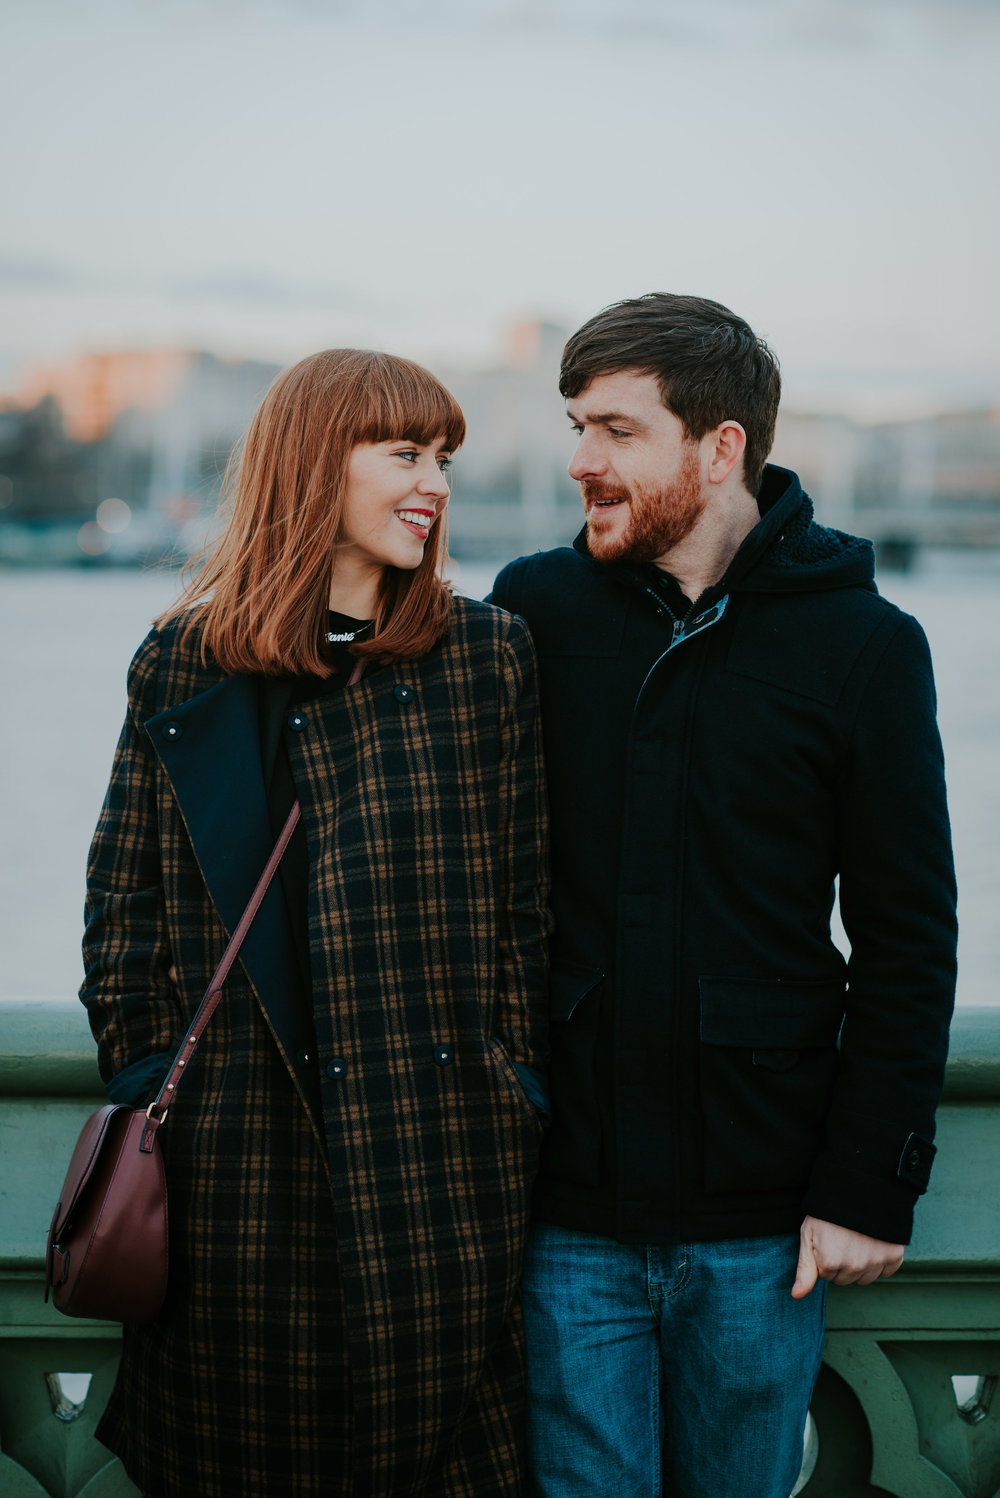 Engaged couple in love on Westminster Bridge London